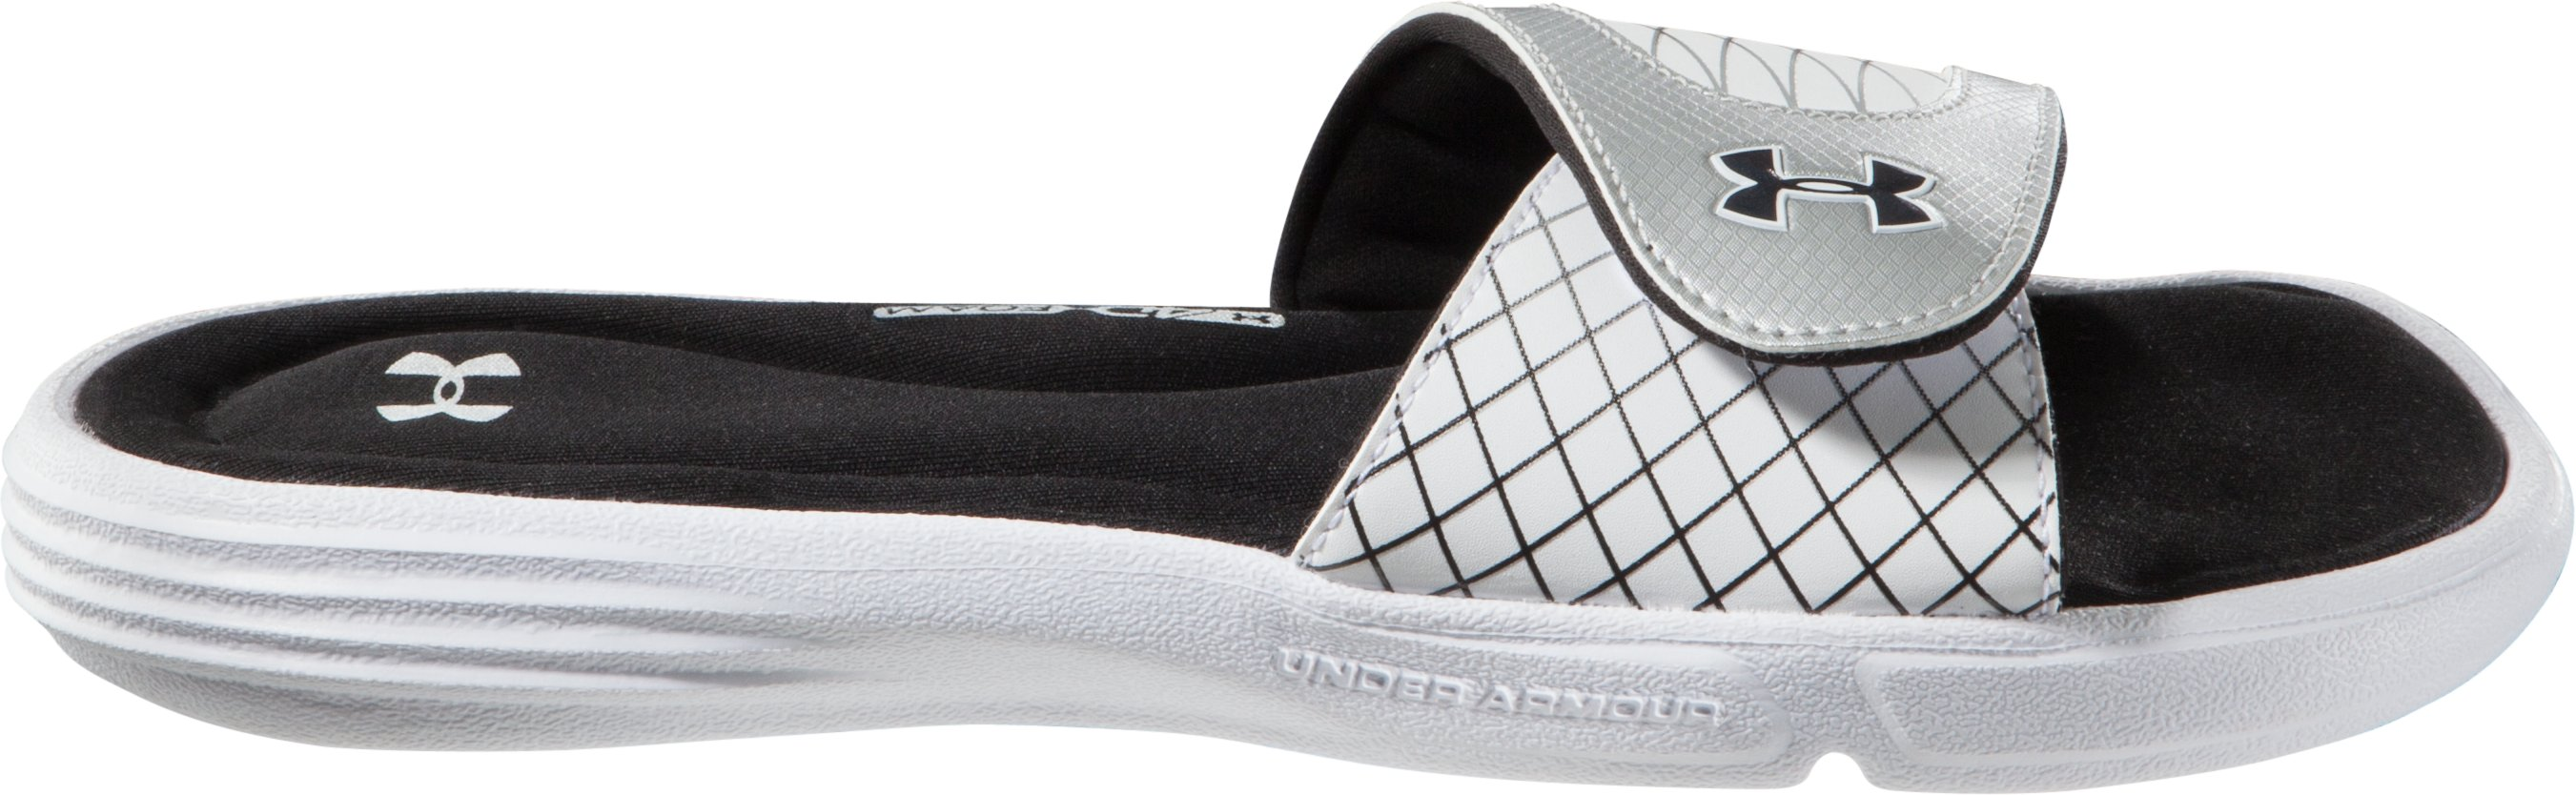 Women's Ignite V Slide, White